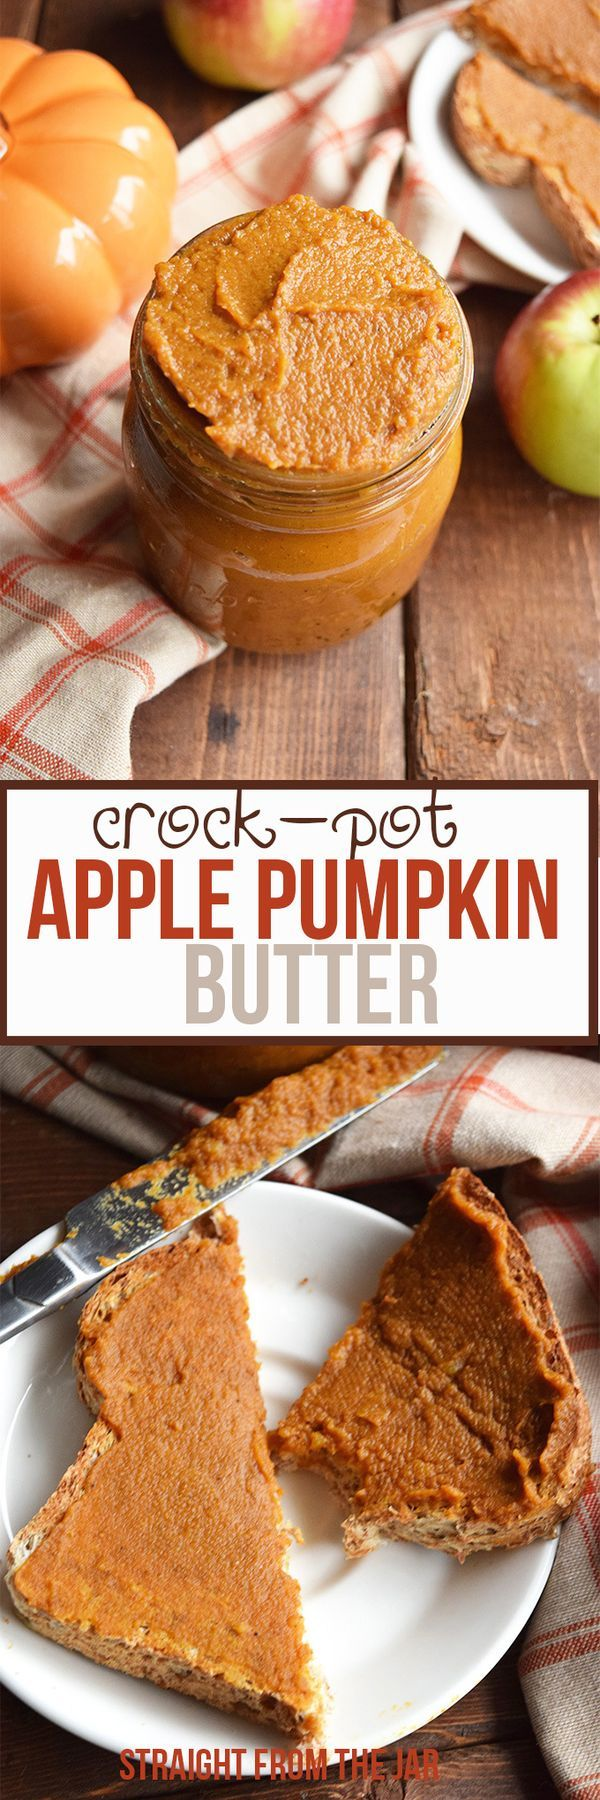 Pull out the crock-pot and whip up a batch of this delicious Crock-Pot Apple Pumpkin Butter. The perfect fall topping to spread on toast, crackers or to eat straight from the jar with a spoon!